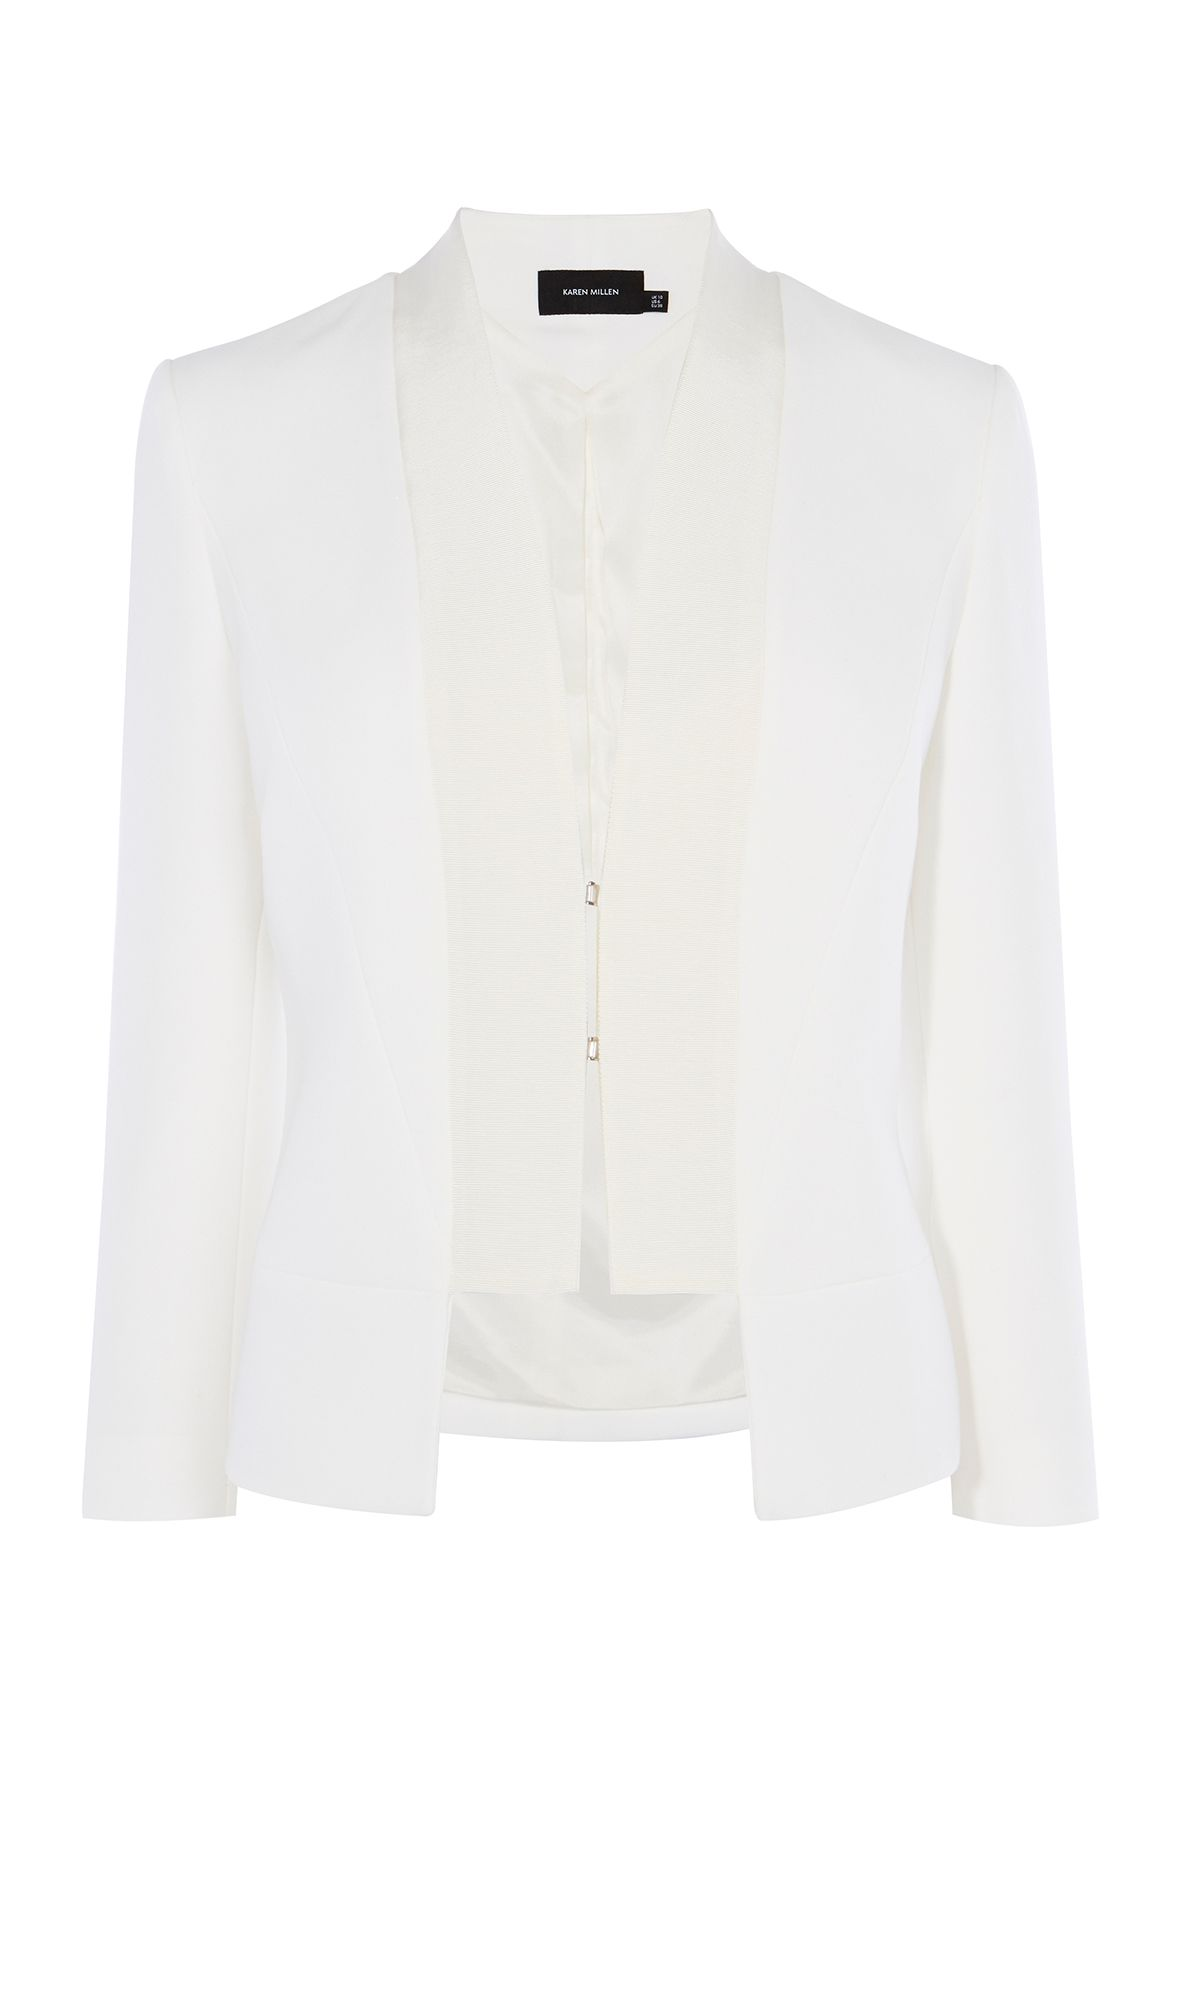 Karen Millen Fluid Tailoring Collection, White